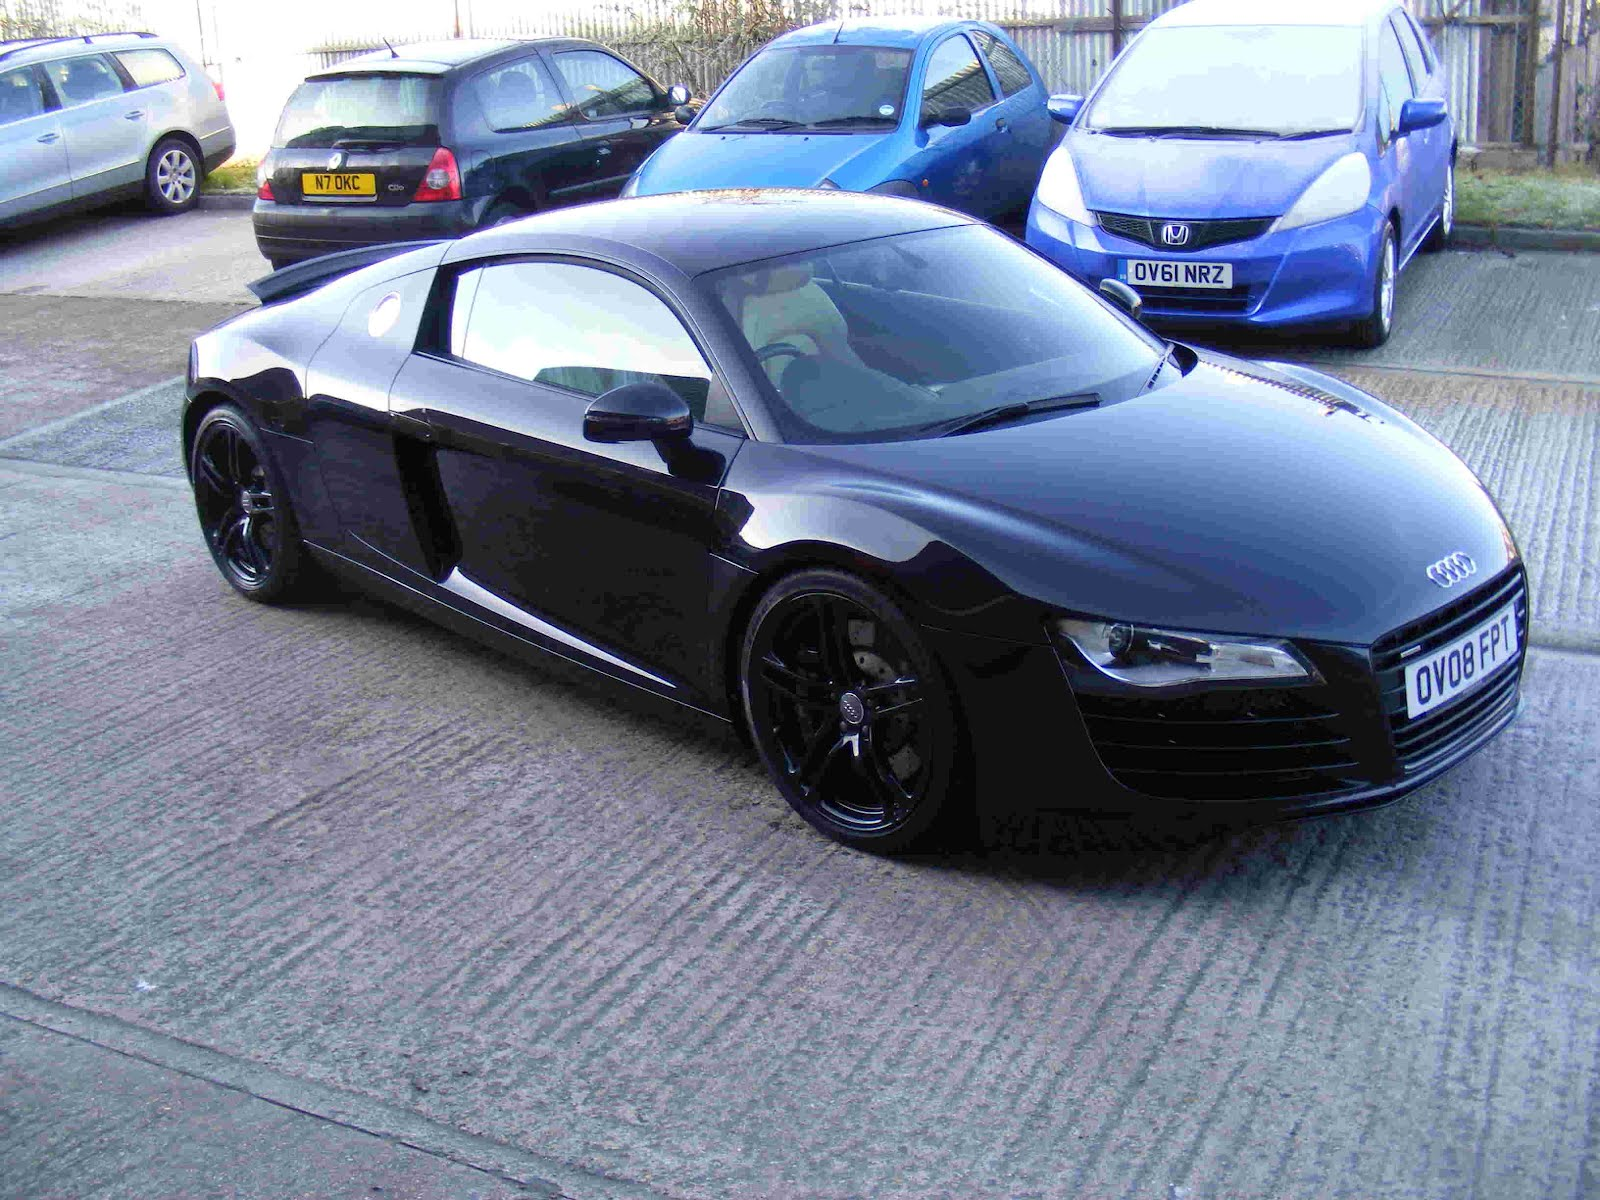 De-Pollution - the Automotive Recycling blog from Salvage Wire: Audi on audi quattro, audi tt, audi q7, audi rs5, audi r10, audi 8 series, audi rs, audi a4, audi suv, audi s5, audi r8r, audi 4 door, audi rs8, audi coupe, audi a10, audi rs6, audi s8, audi r3, audi a8, audi r7,